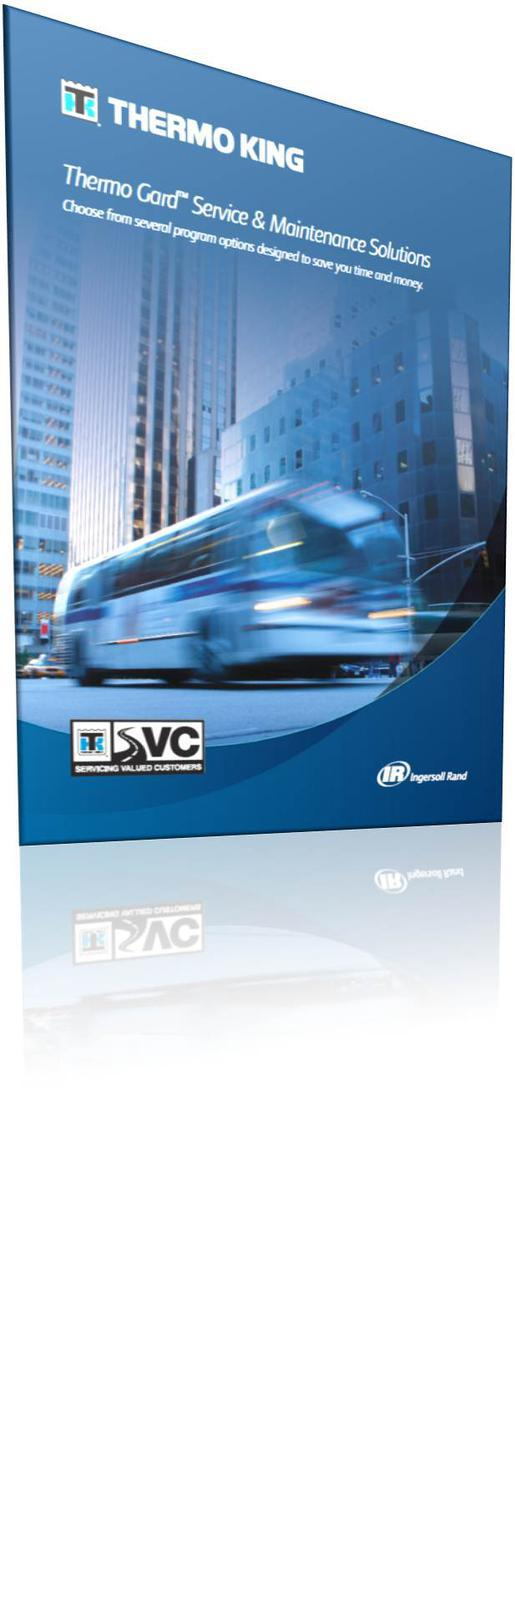 Bus SVC Brochure.jpg